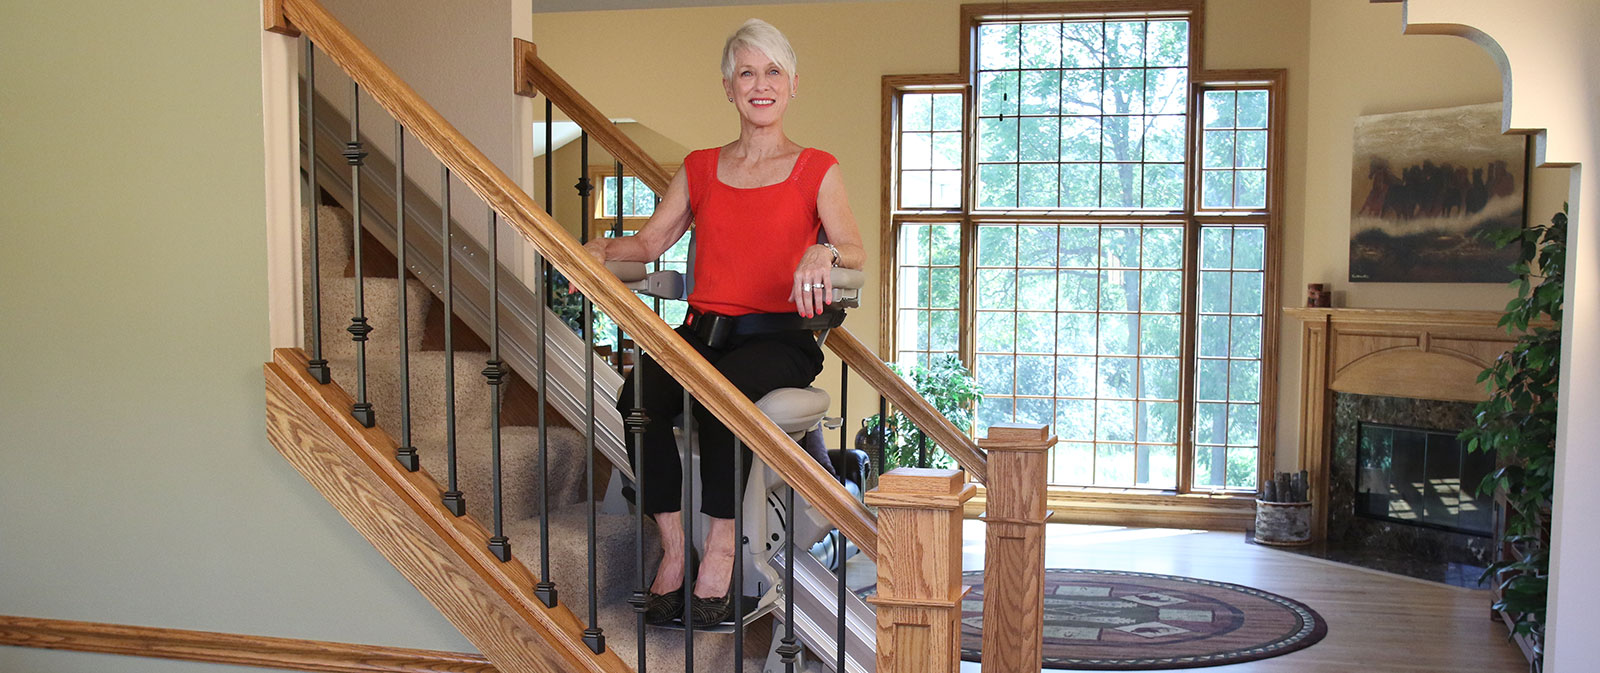 bruno stair lift service manual